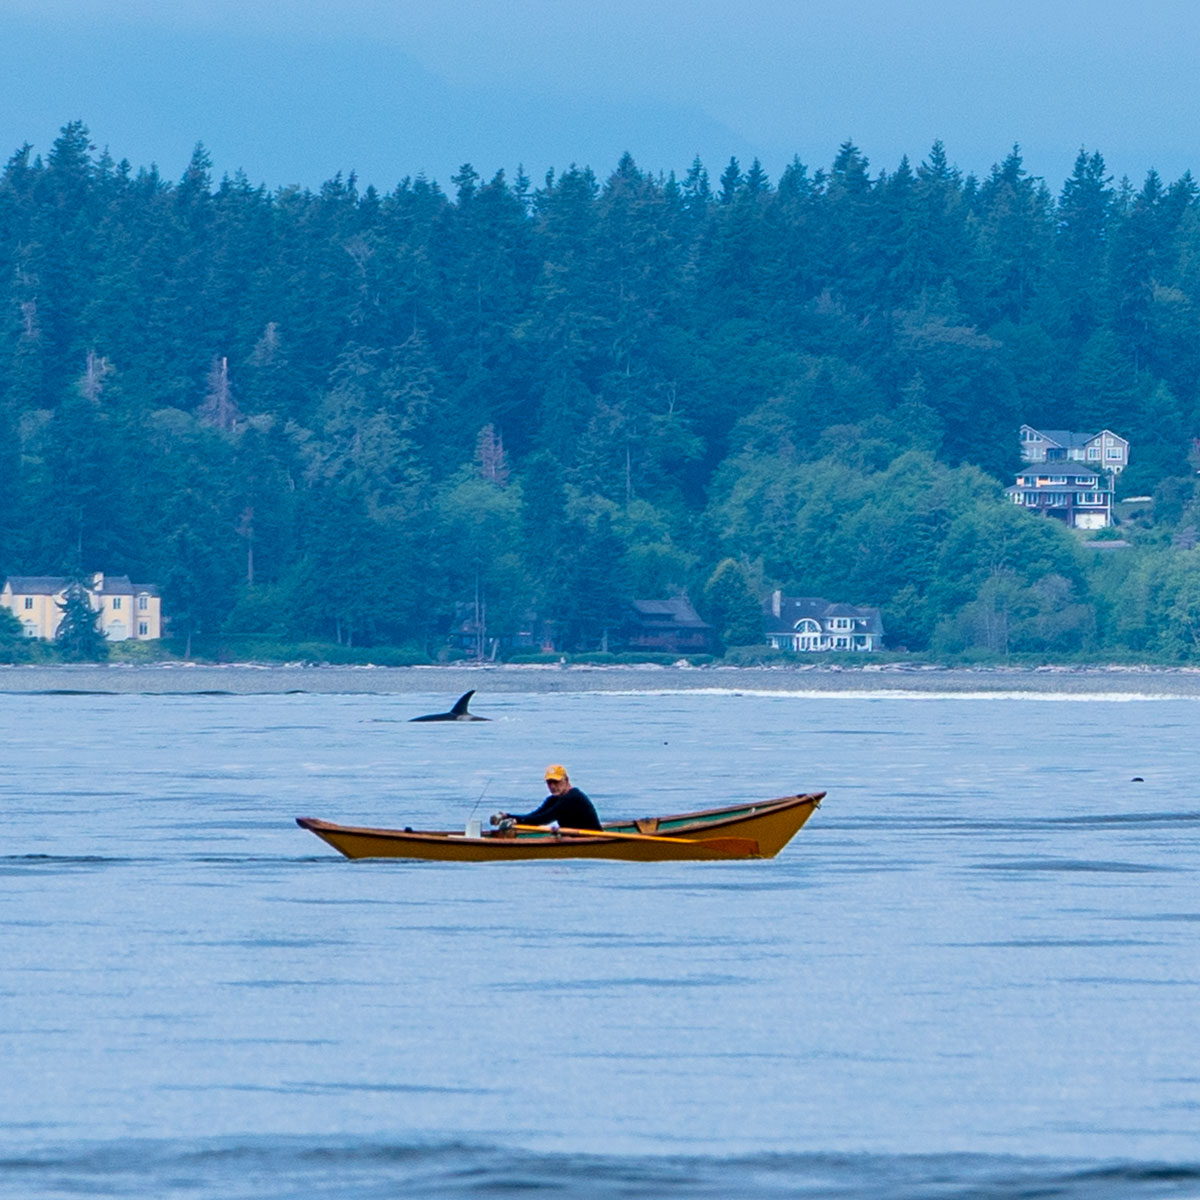 Noticing an Orca in Puget Sound